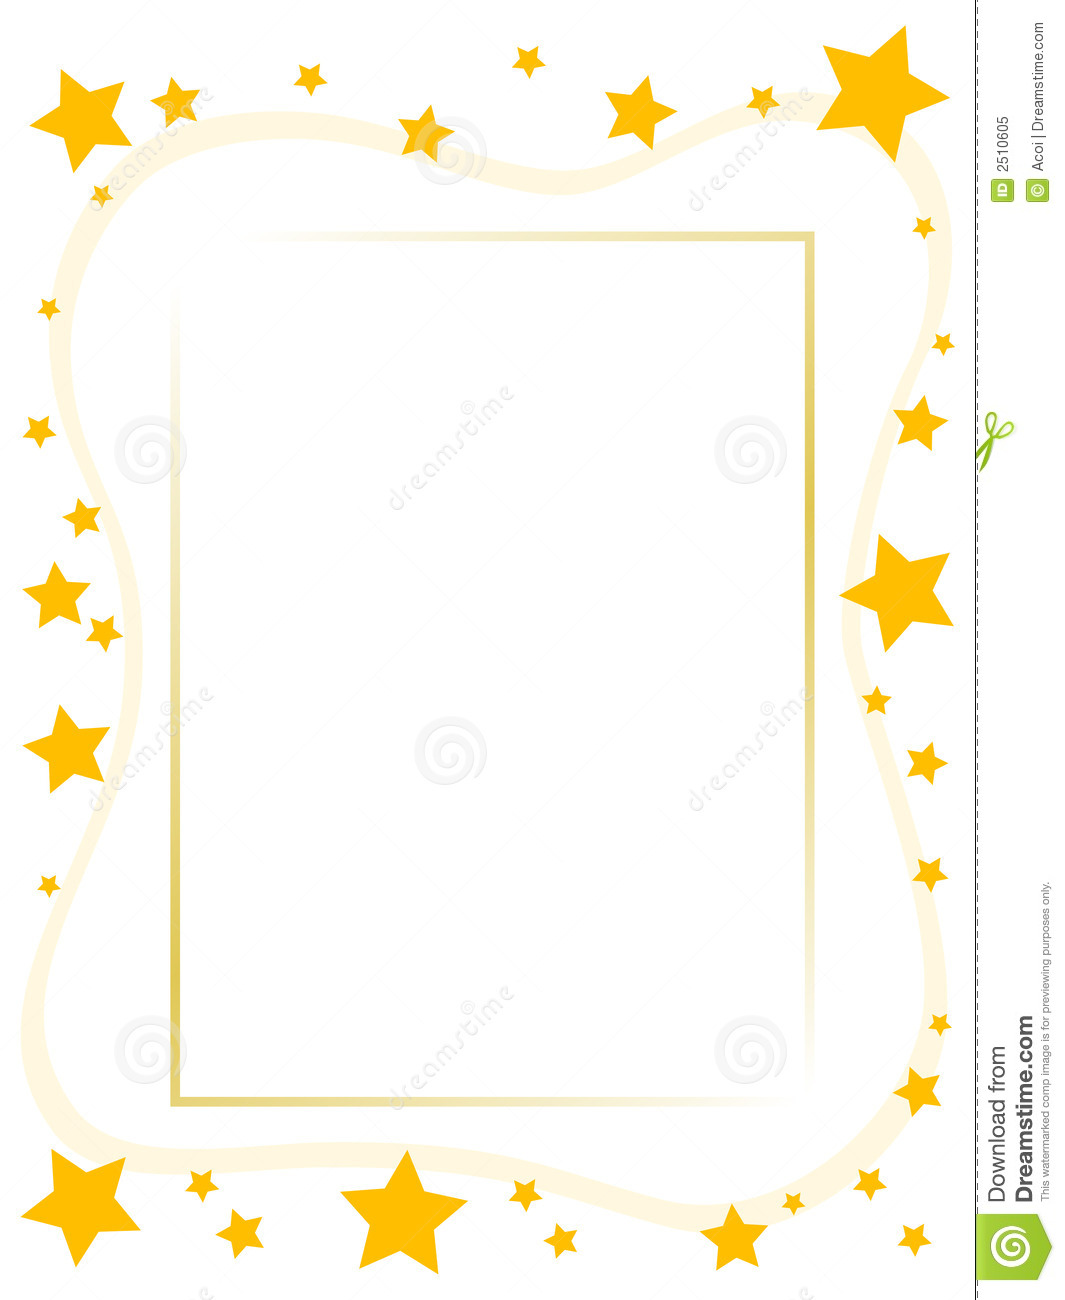 Yellow Star Frame Royalty Free Stock Photo - Image: 2510605